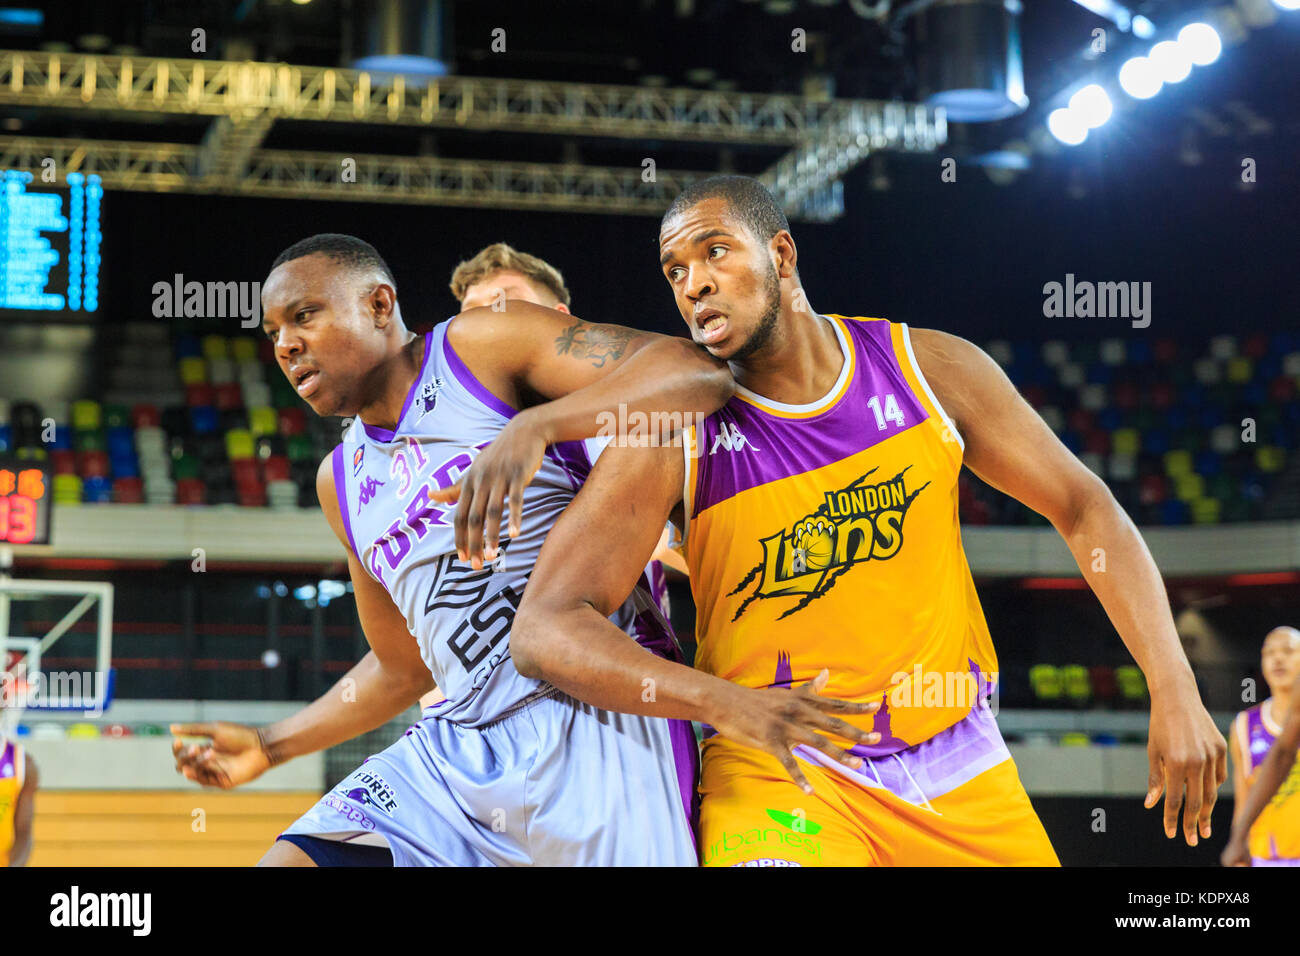 London, UK, 15th Oct 2017. Leeds' Allie Fullah (31)is blocked by Lions' Lamar Roberts (14). The London Lions - Stock Image